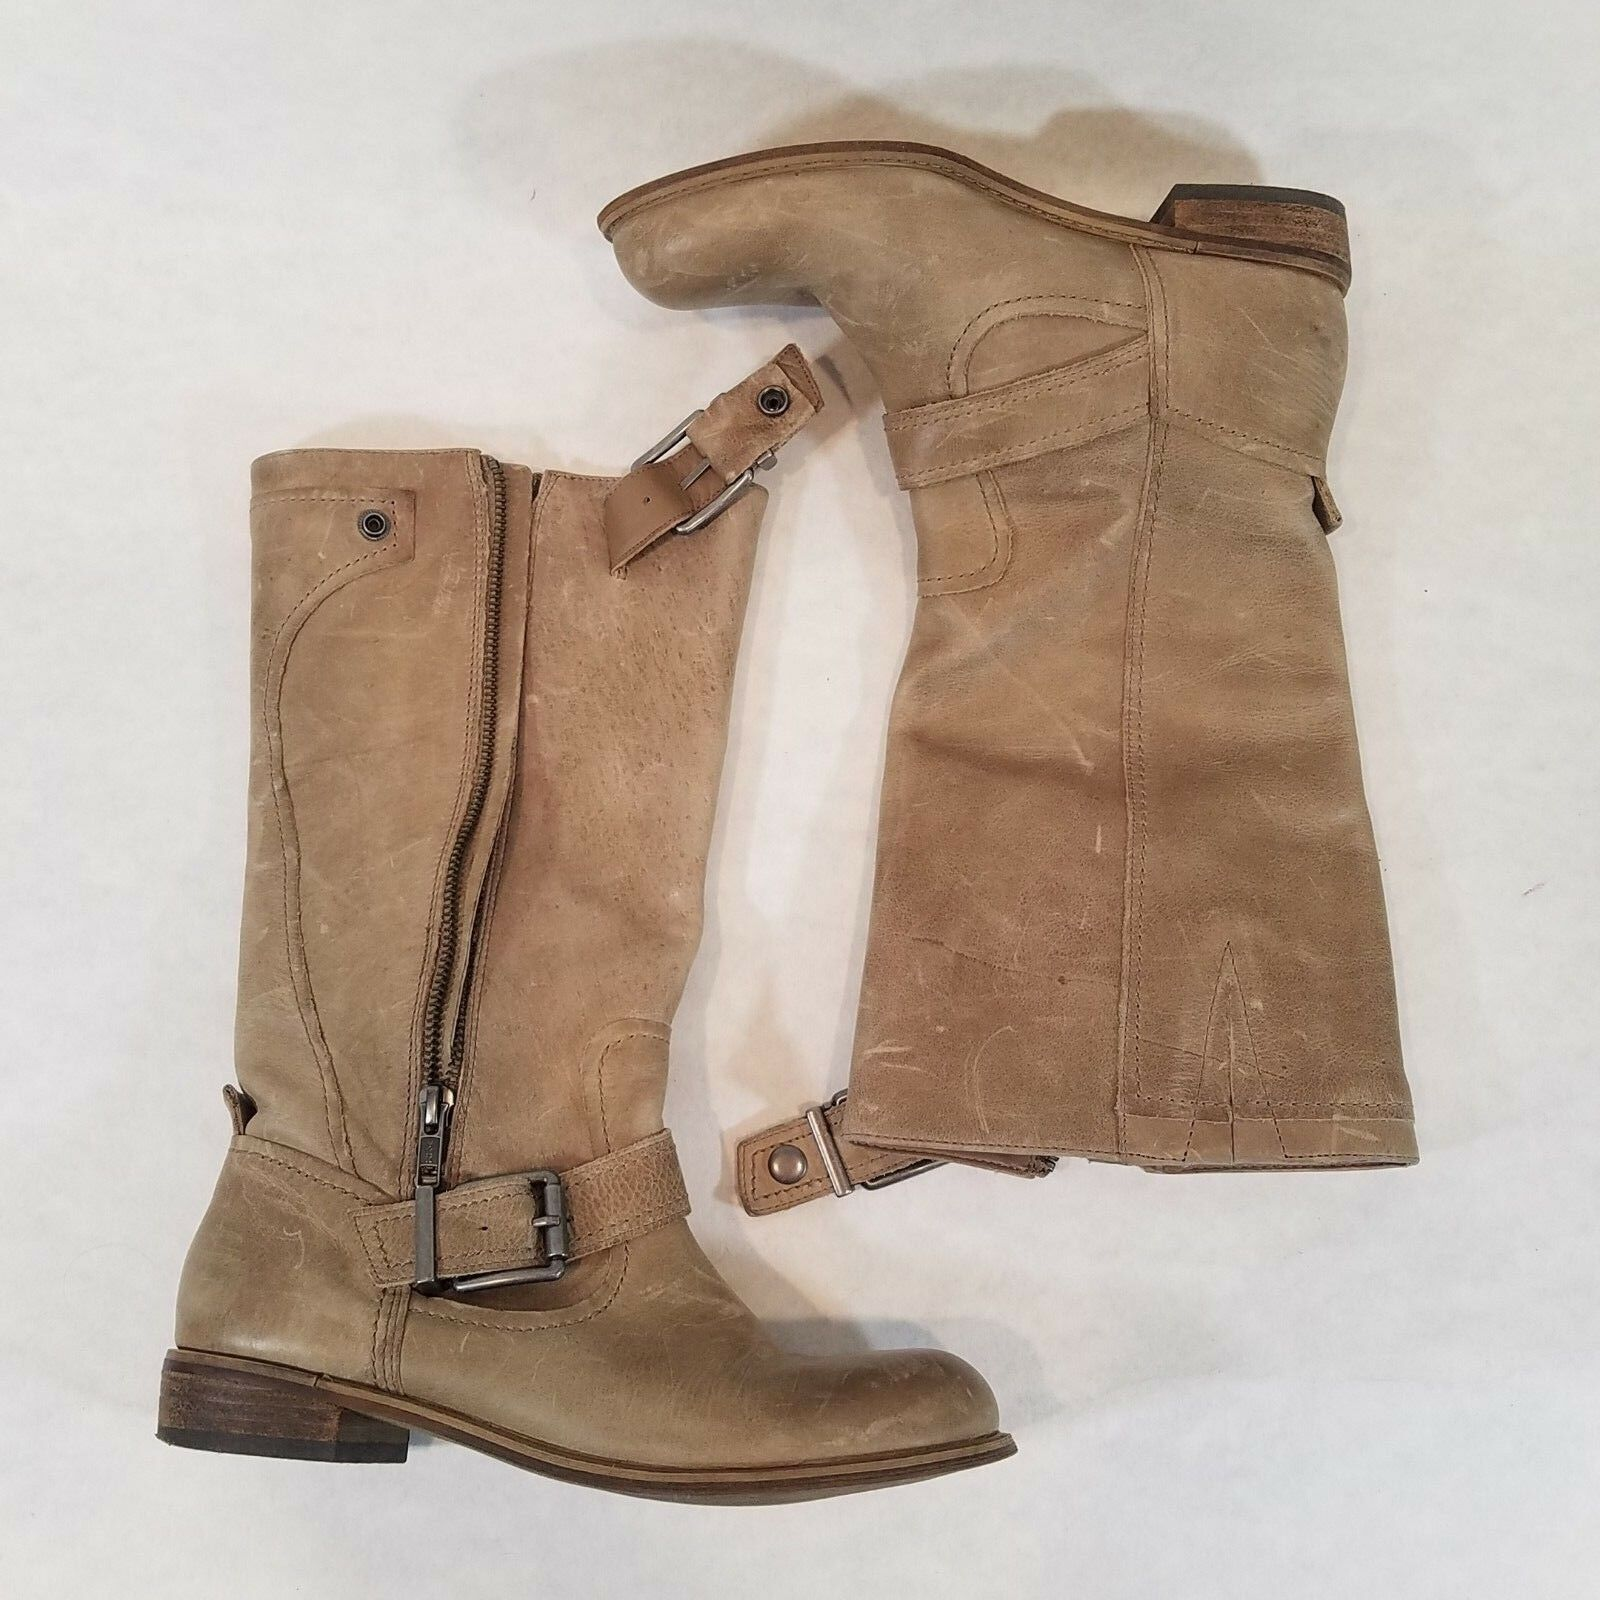 Ladies Gianni Bini Ride On Motorcycle Boots Distressed Camel Color Size 6m